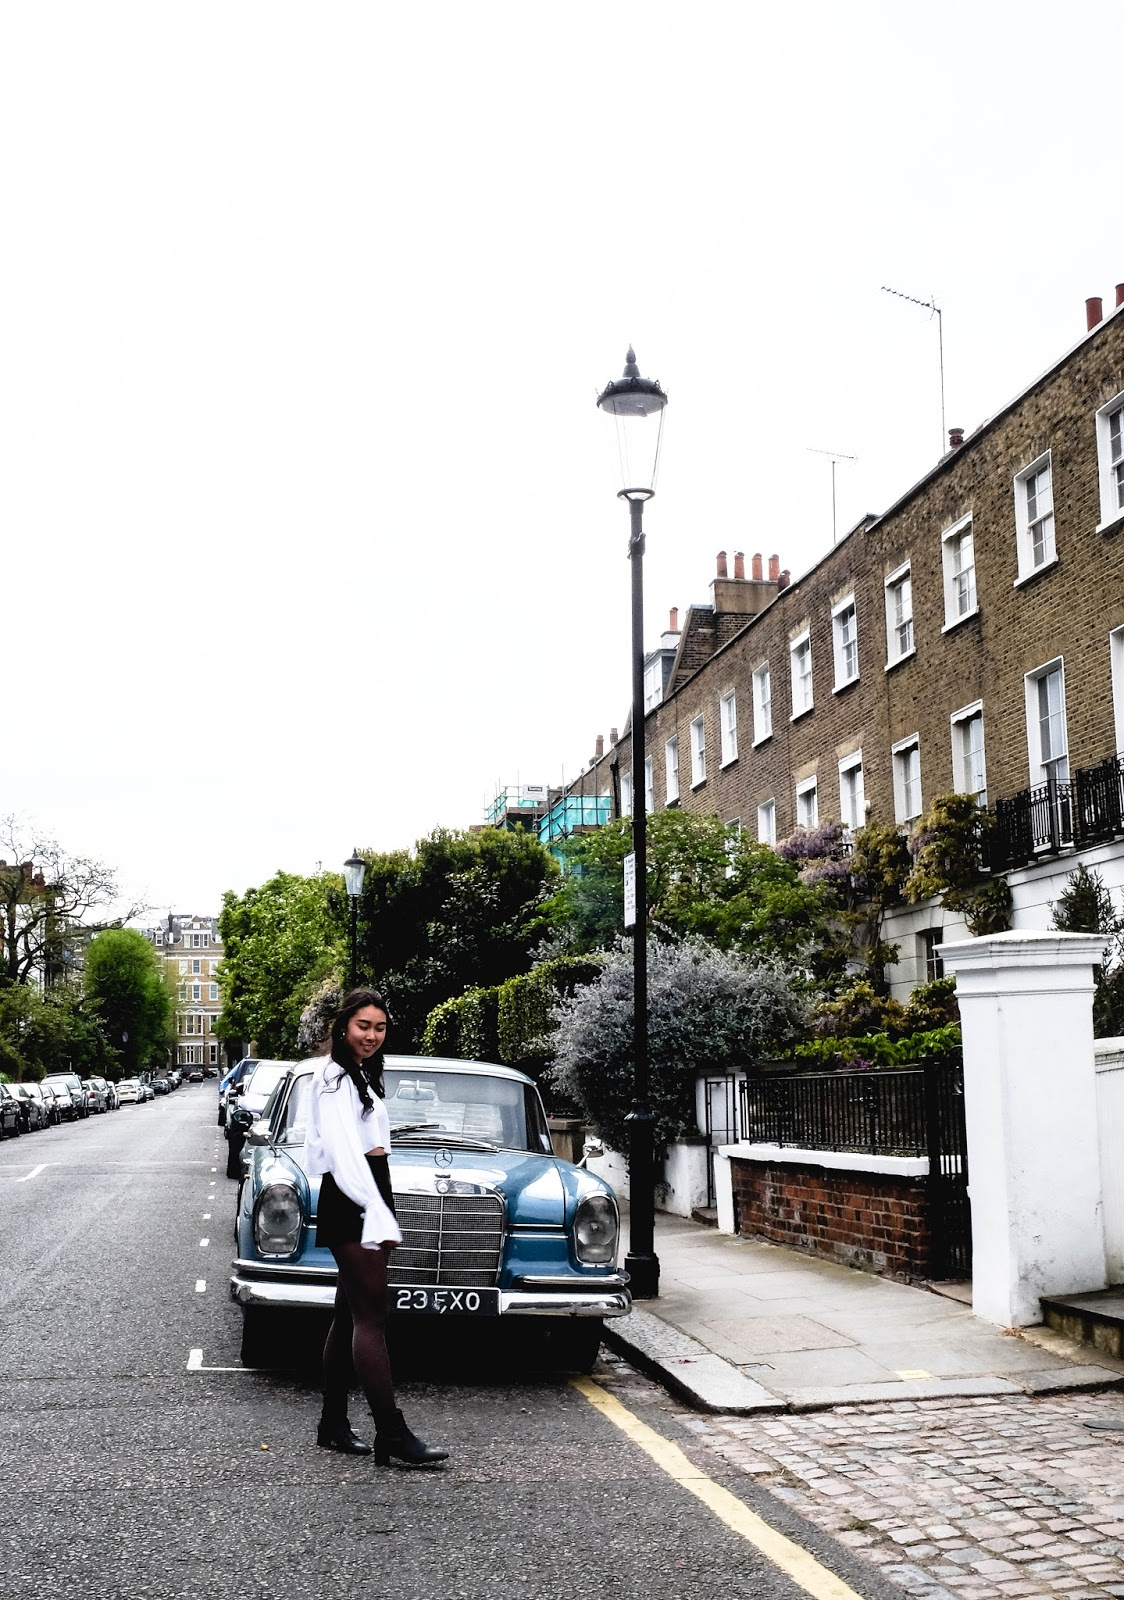 London Travel Guide | Sammy Huynn